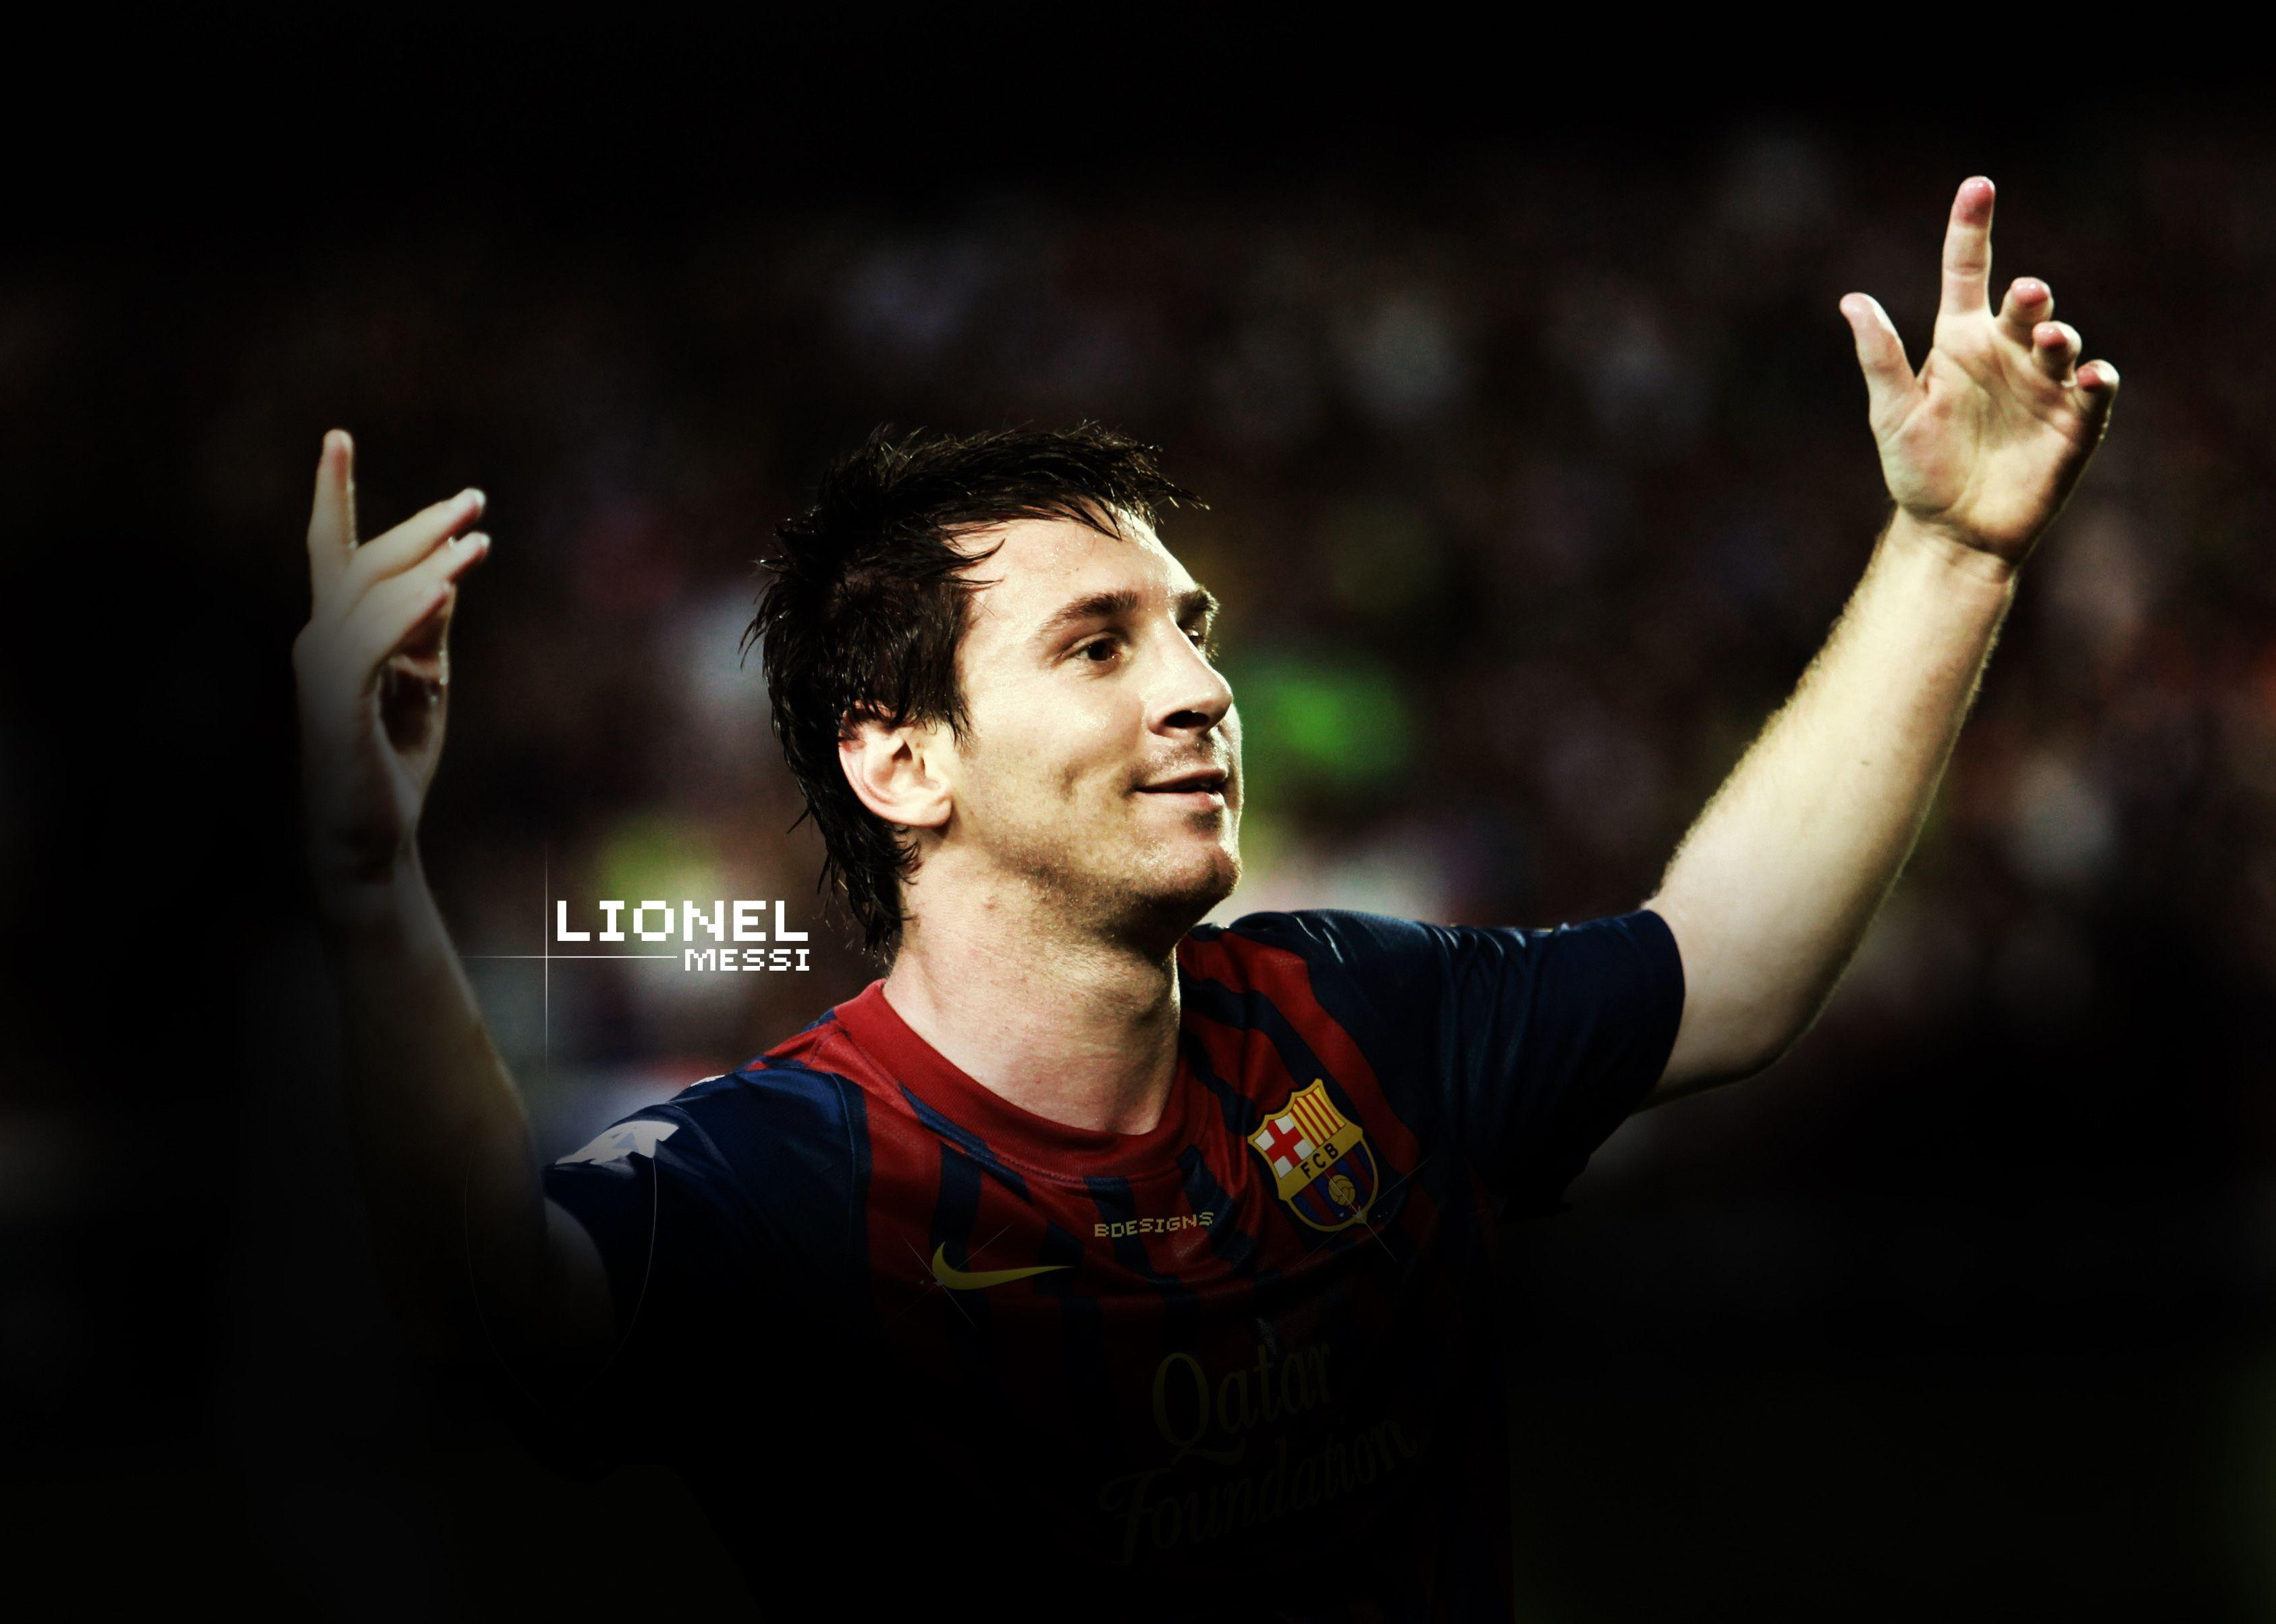 Lionel Messi Wallpaper | Black HD Wallpapers